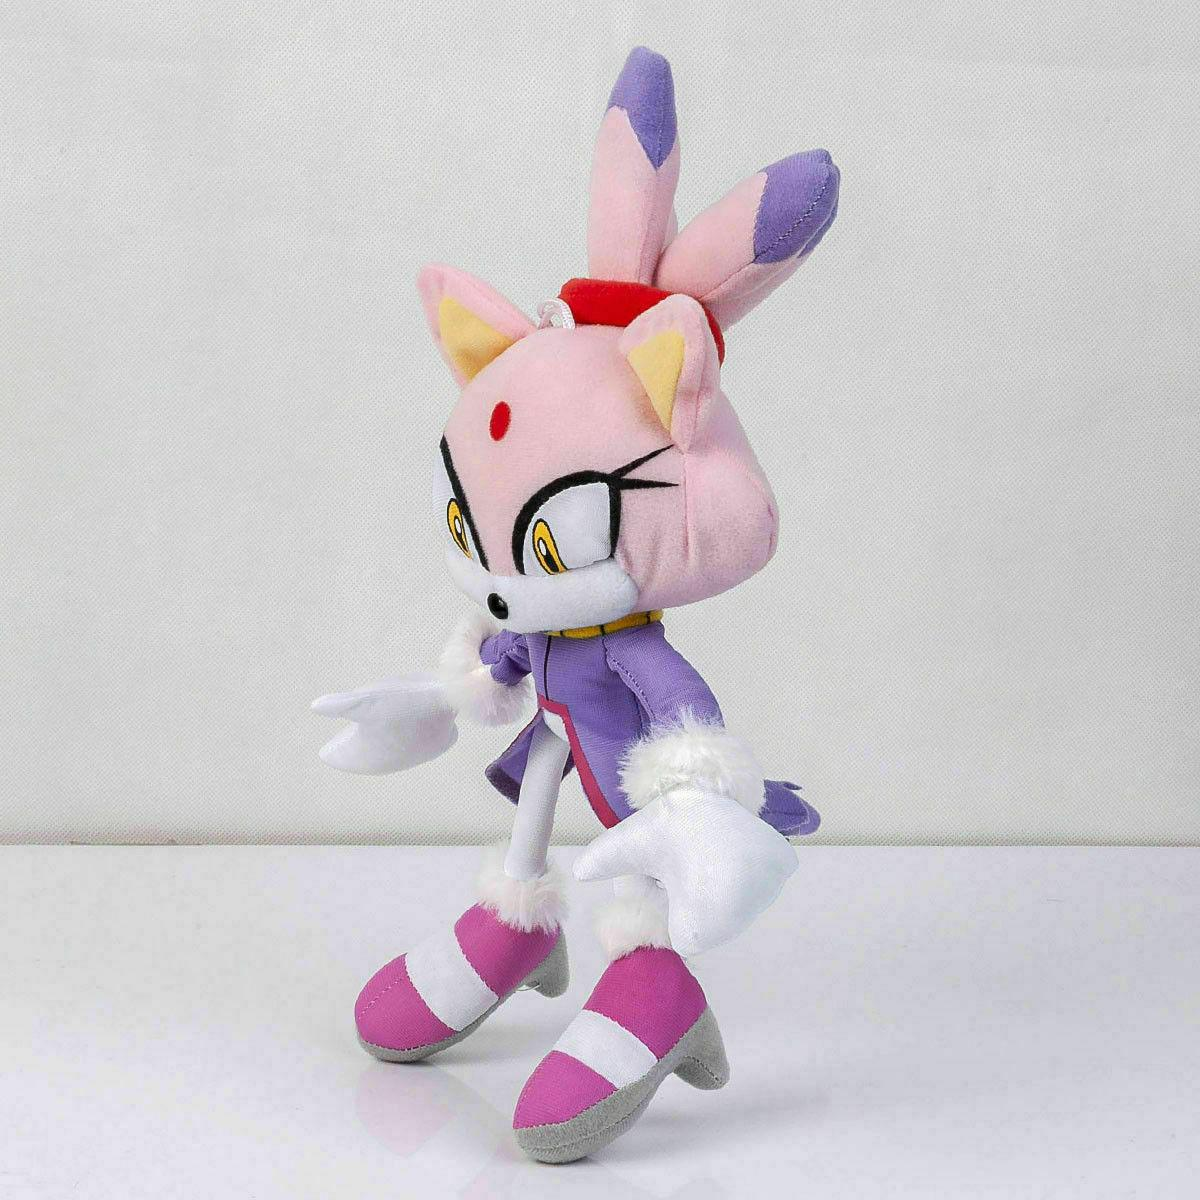 Blaze Stuffed Figures Toys -